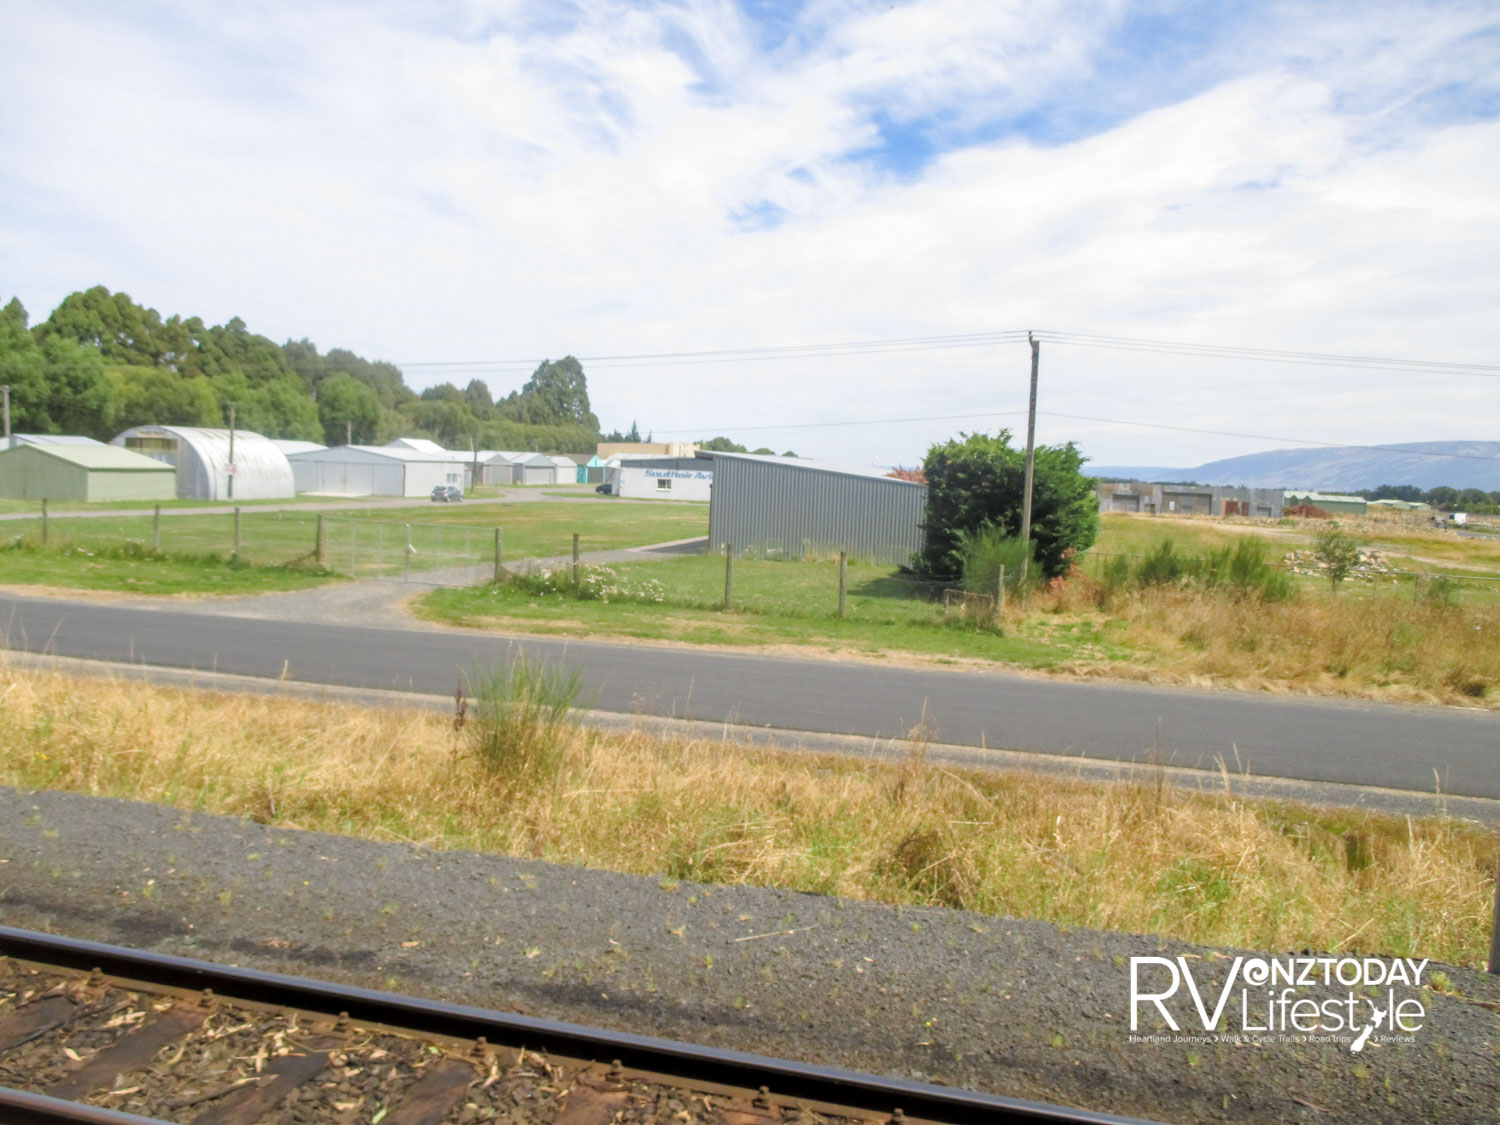 Passing the much reduced Taieri airfield